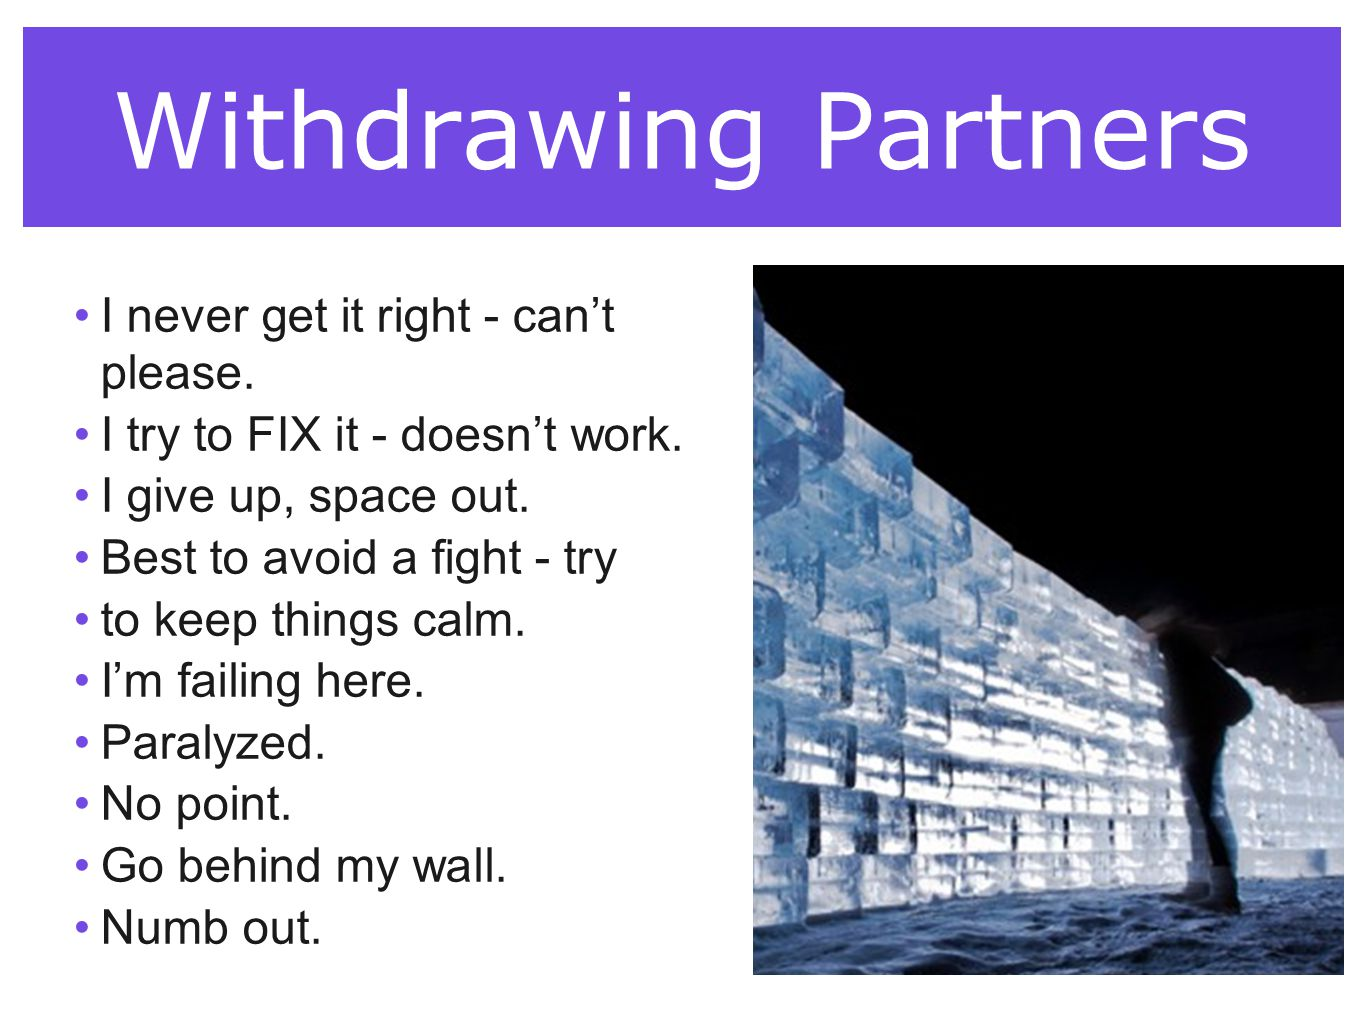 Withdrawing Partners I never get it right - can't please.